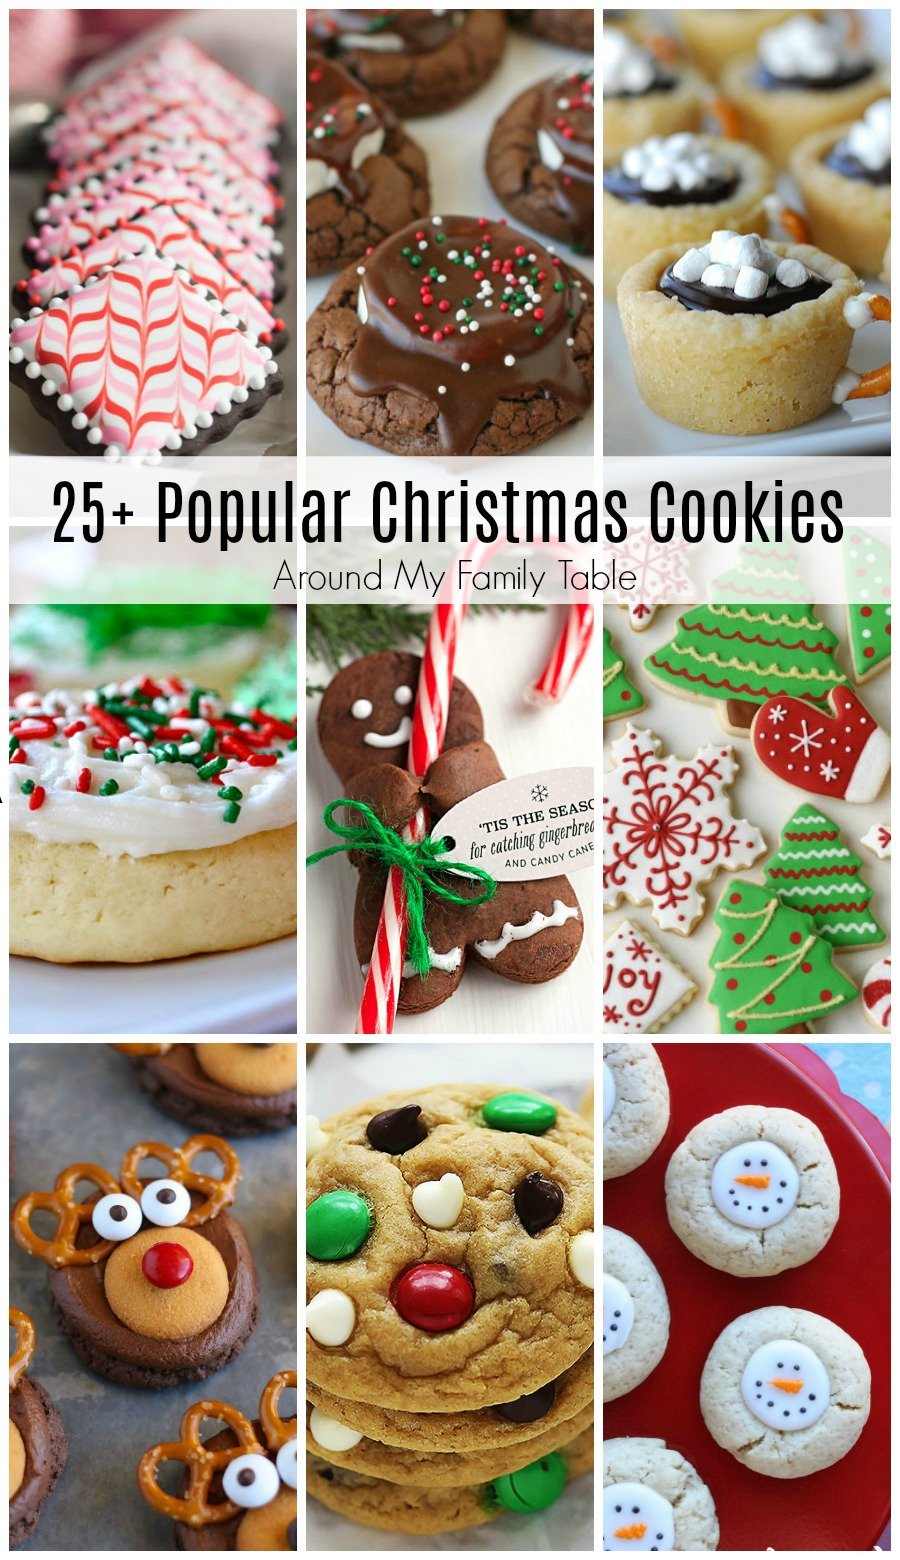 Most Popular Christmas Cookie Recipes Around My Family Table